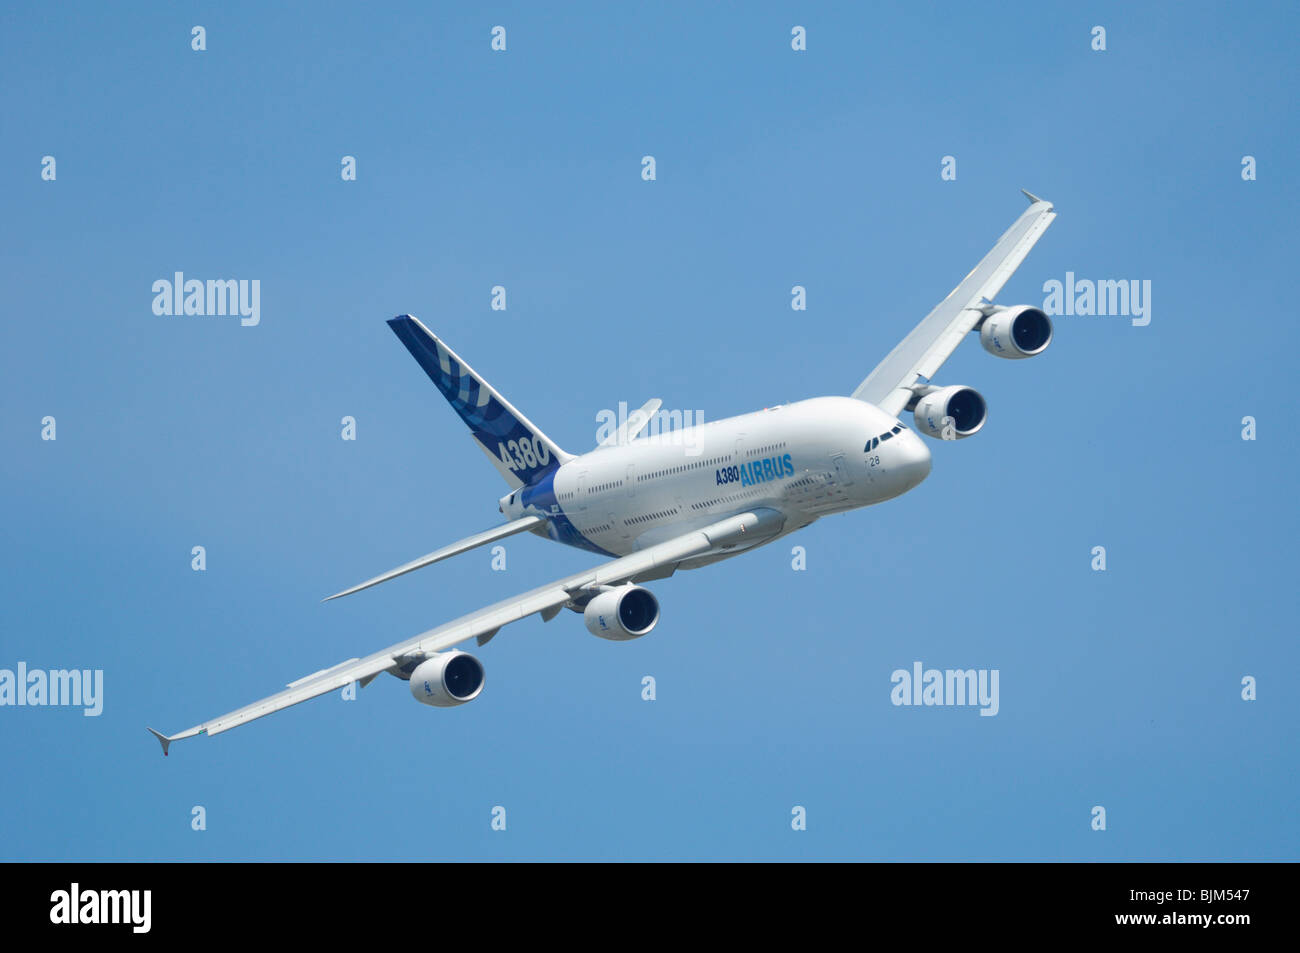 Airliner Airbus A380 flying during 48th Paris International Air show 2009, Le Bourget, Paris, France - Stock Image